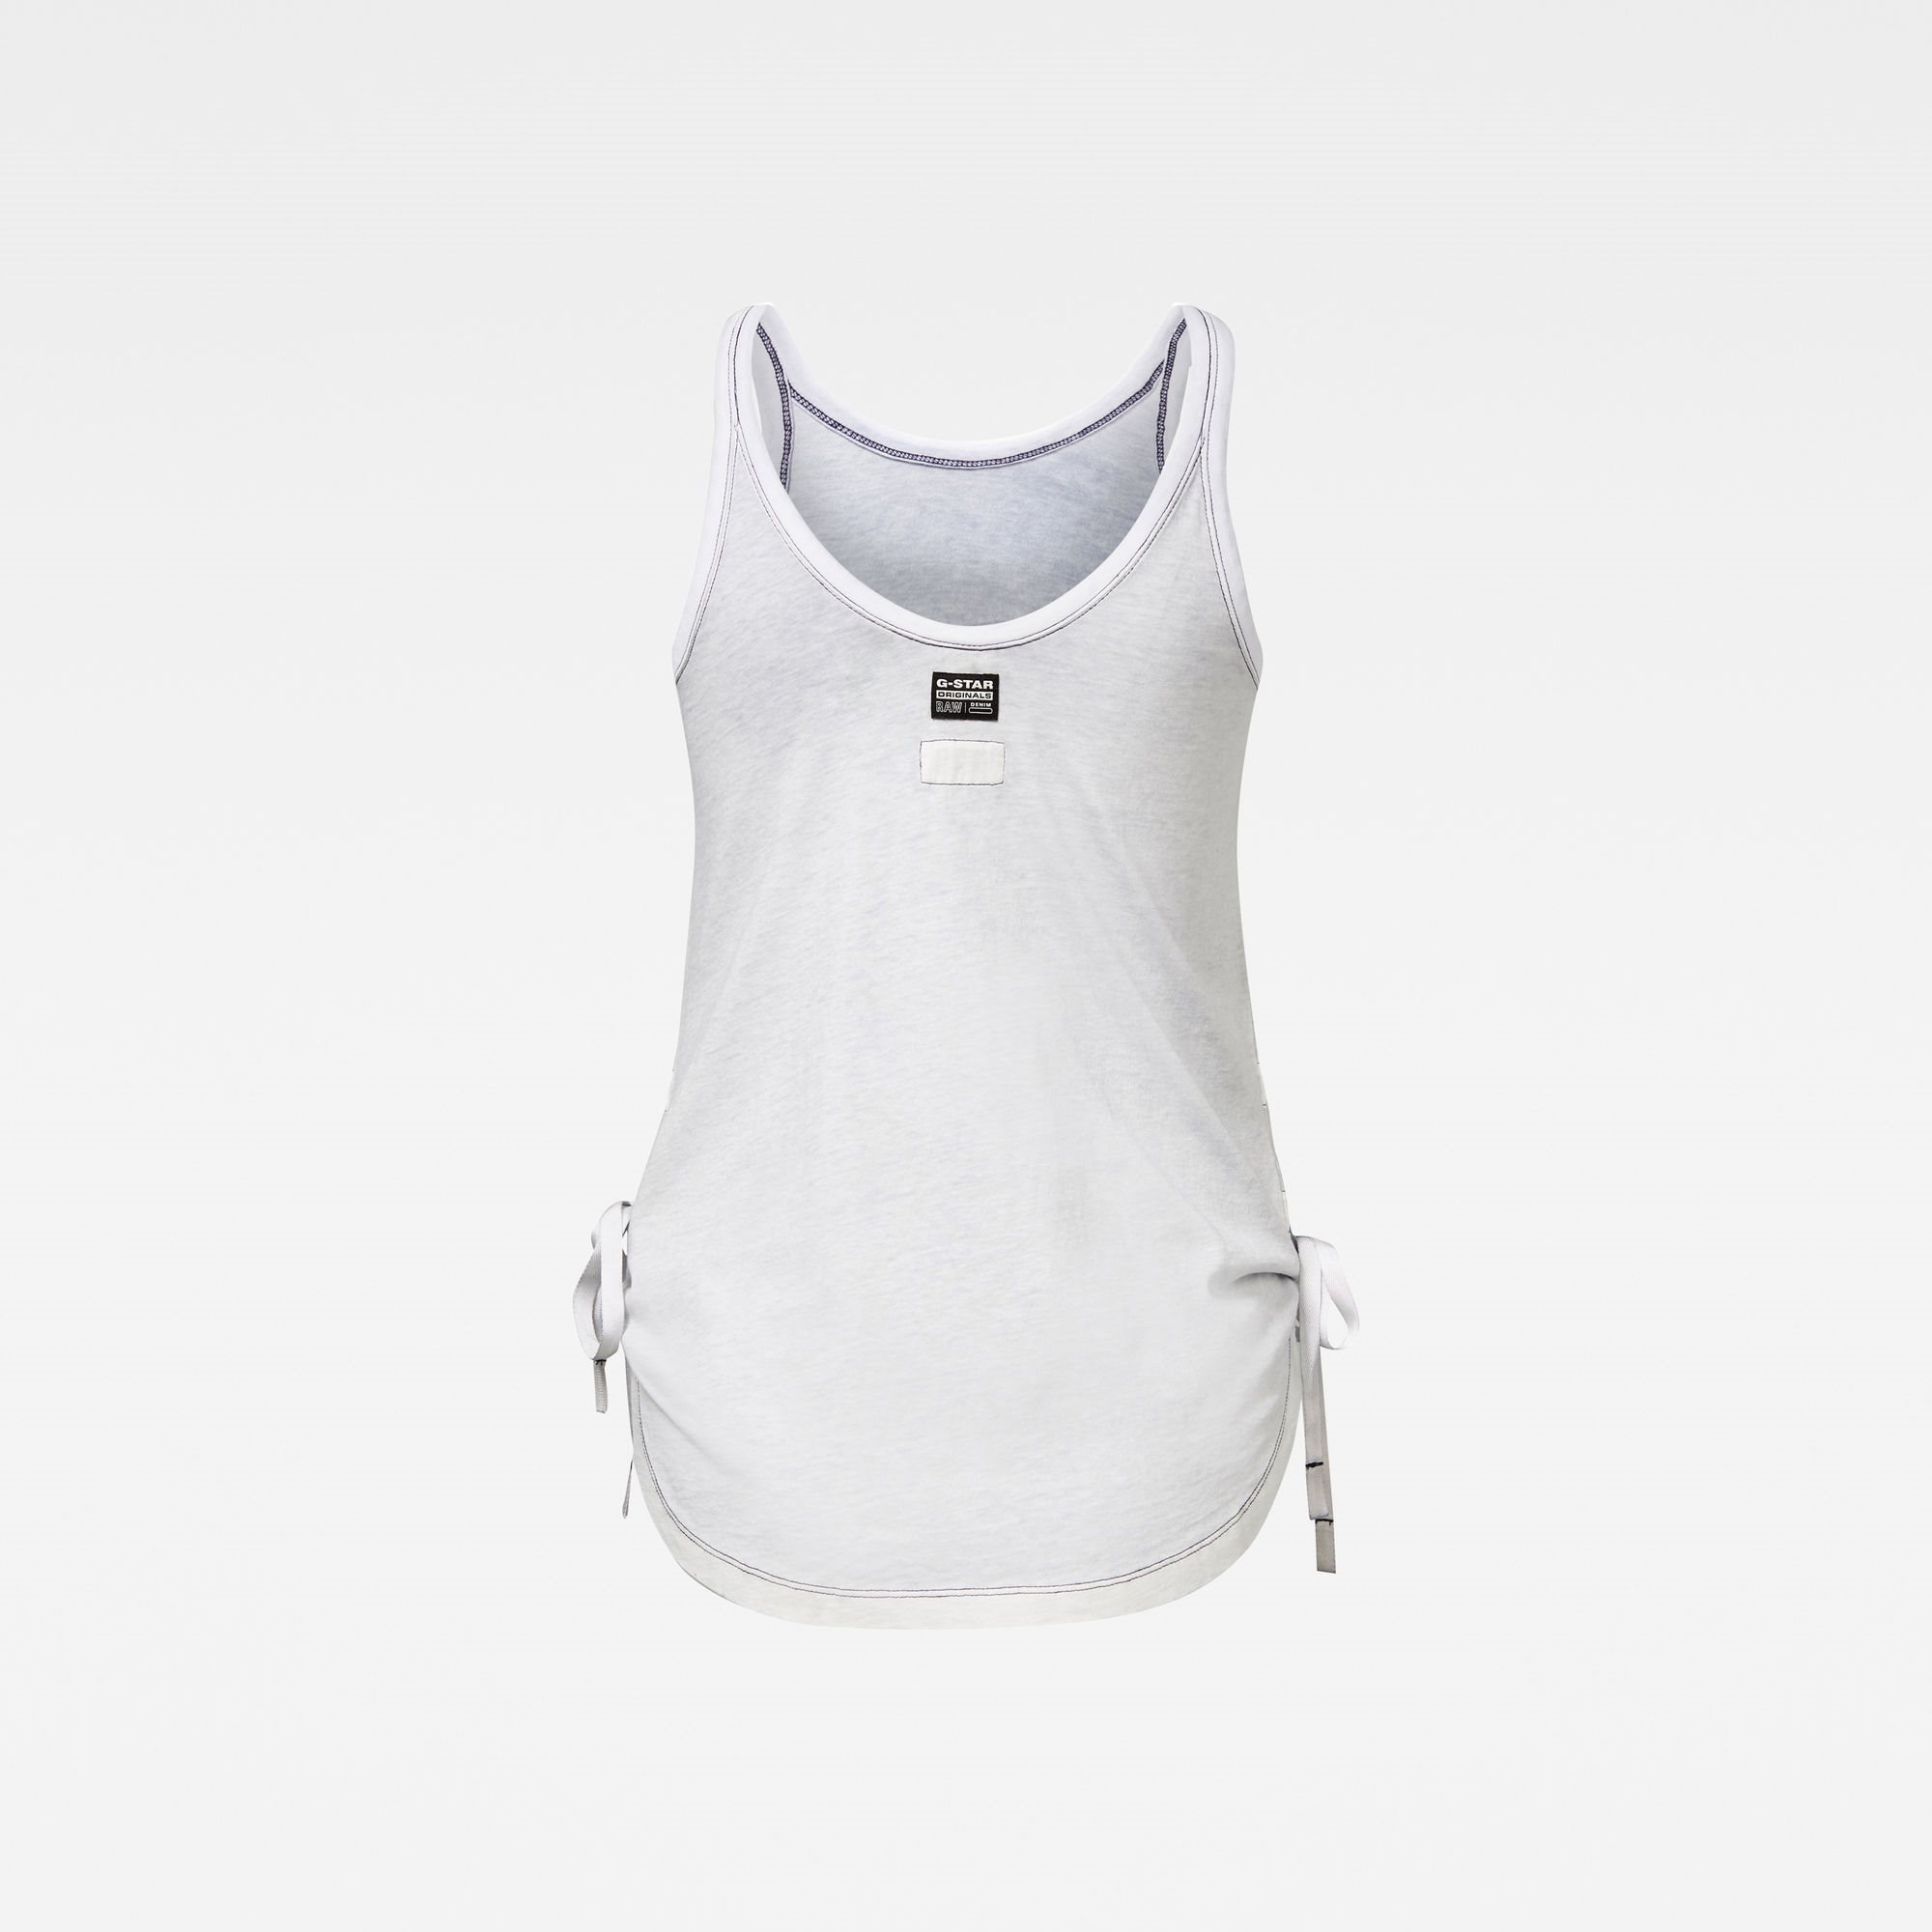 Adjustable tank top inside spr